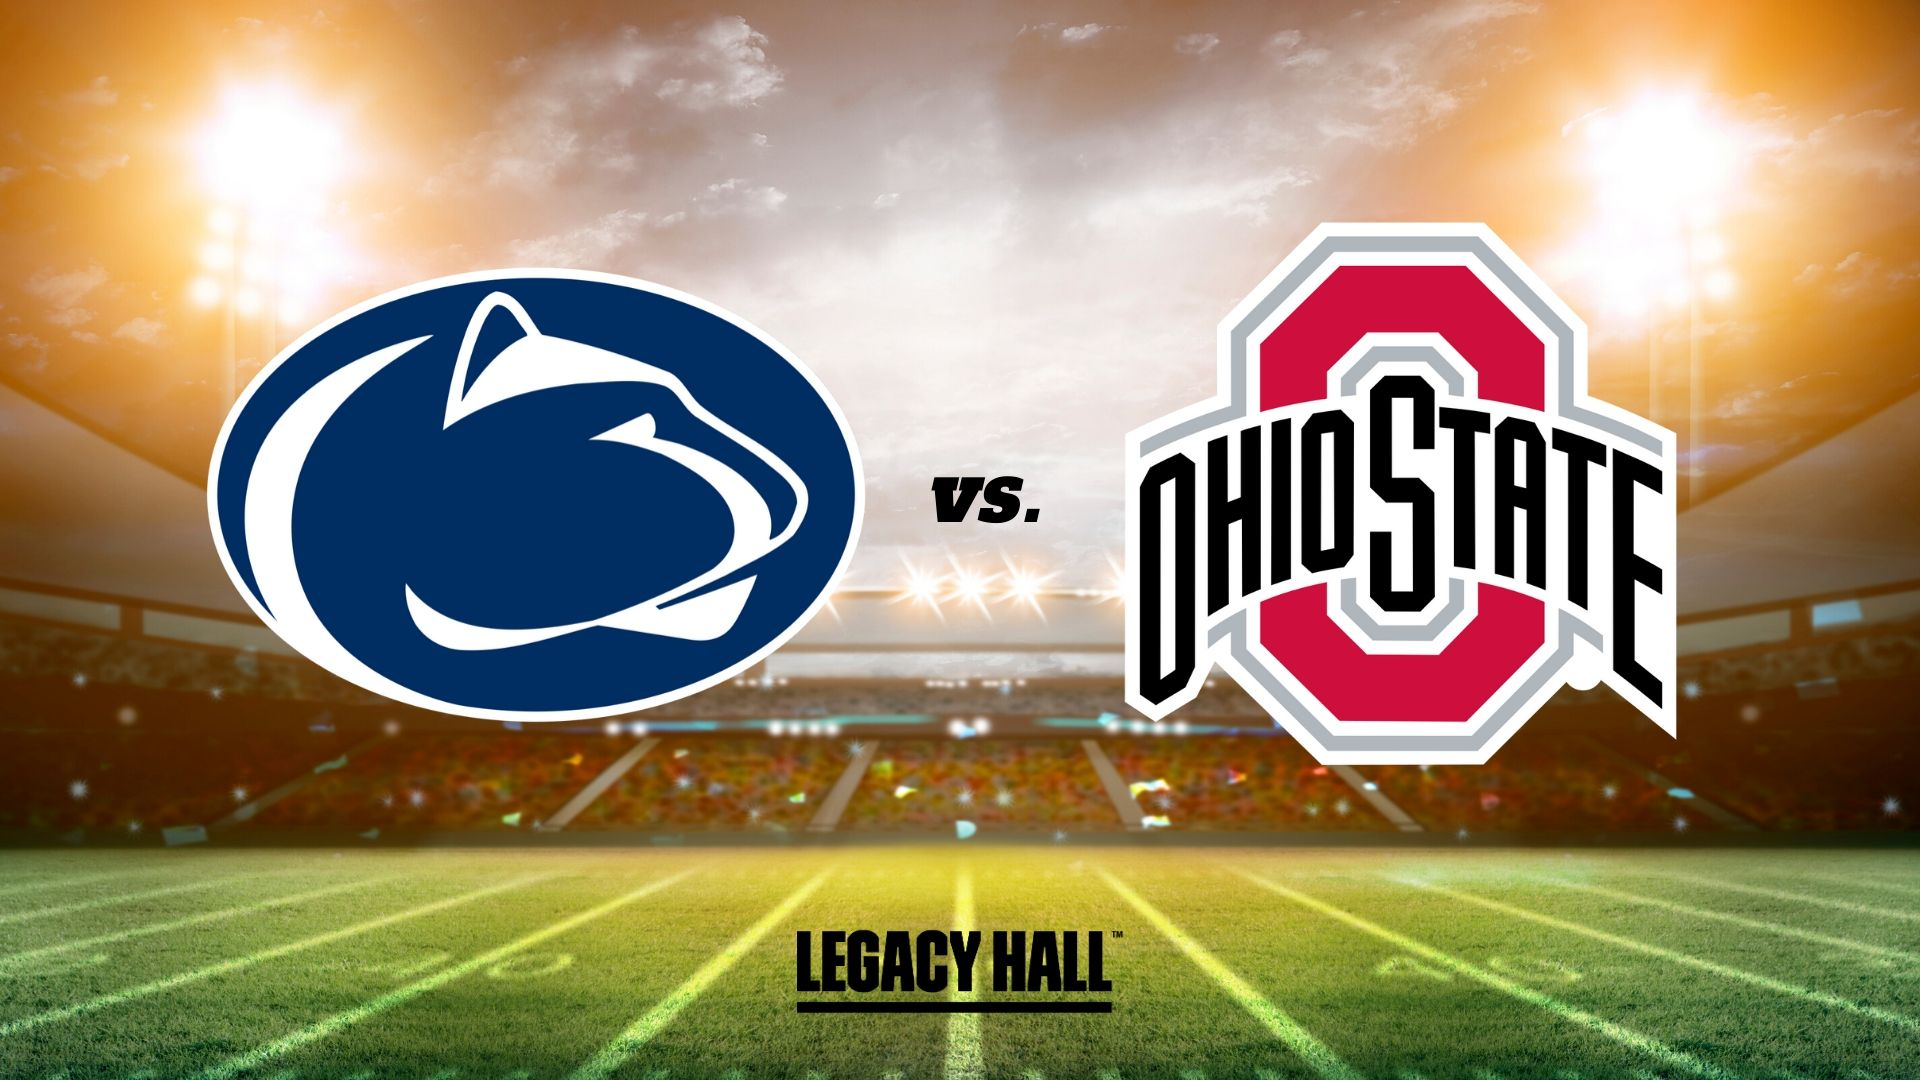 Penn State vs Ohio State Watch Party